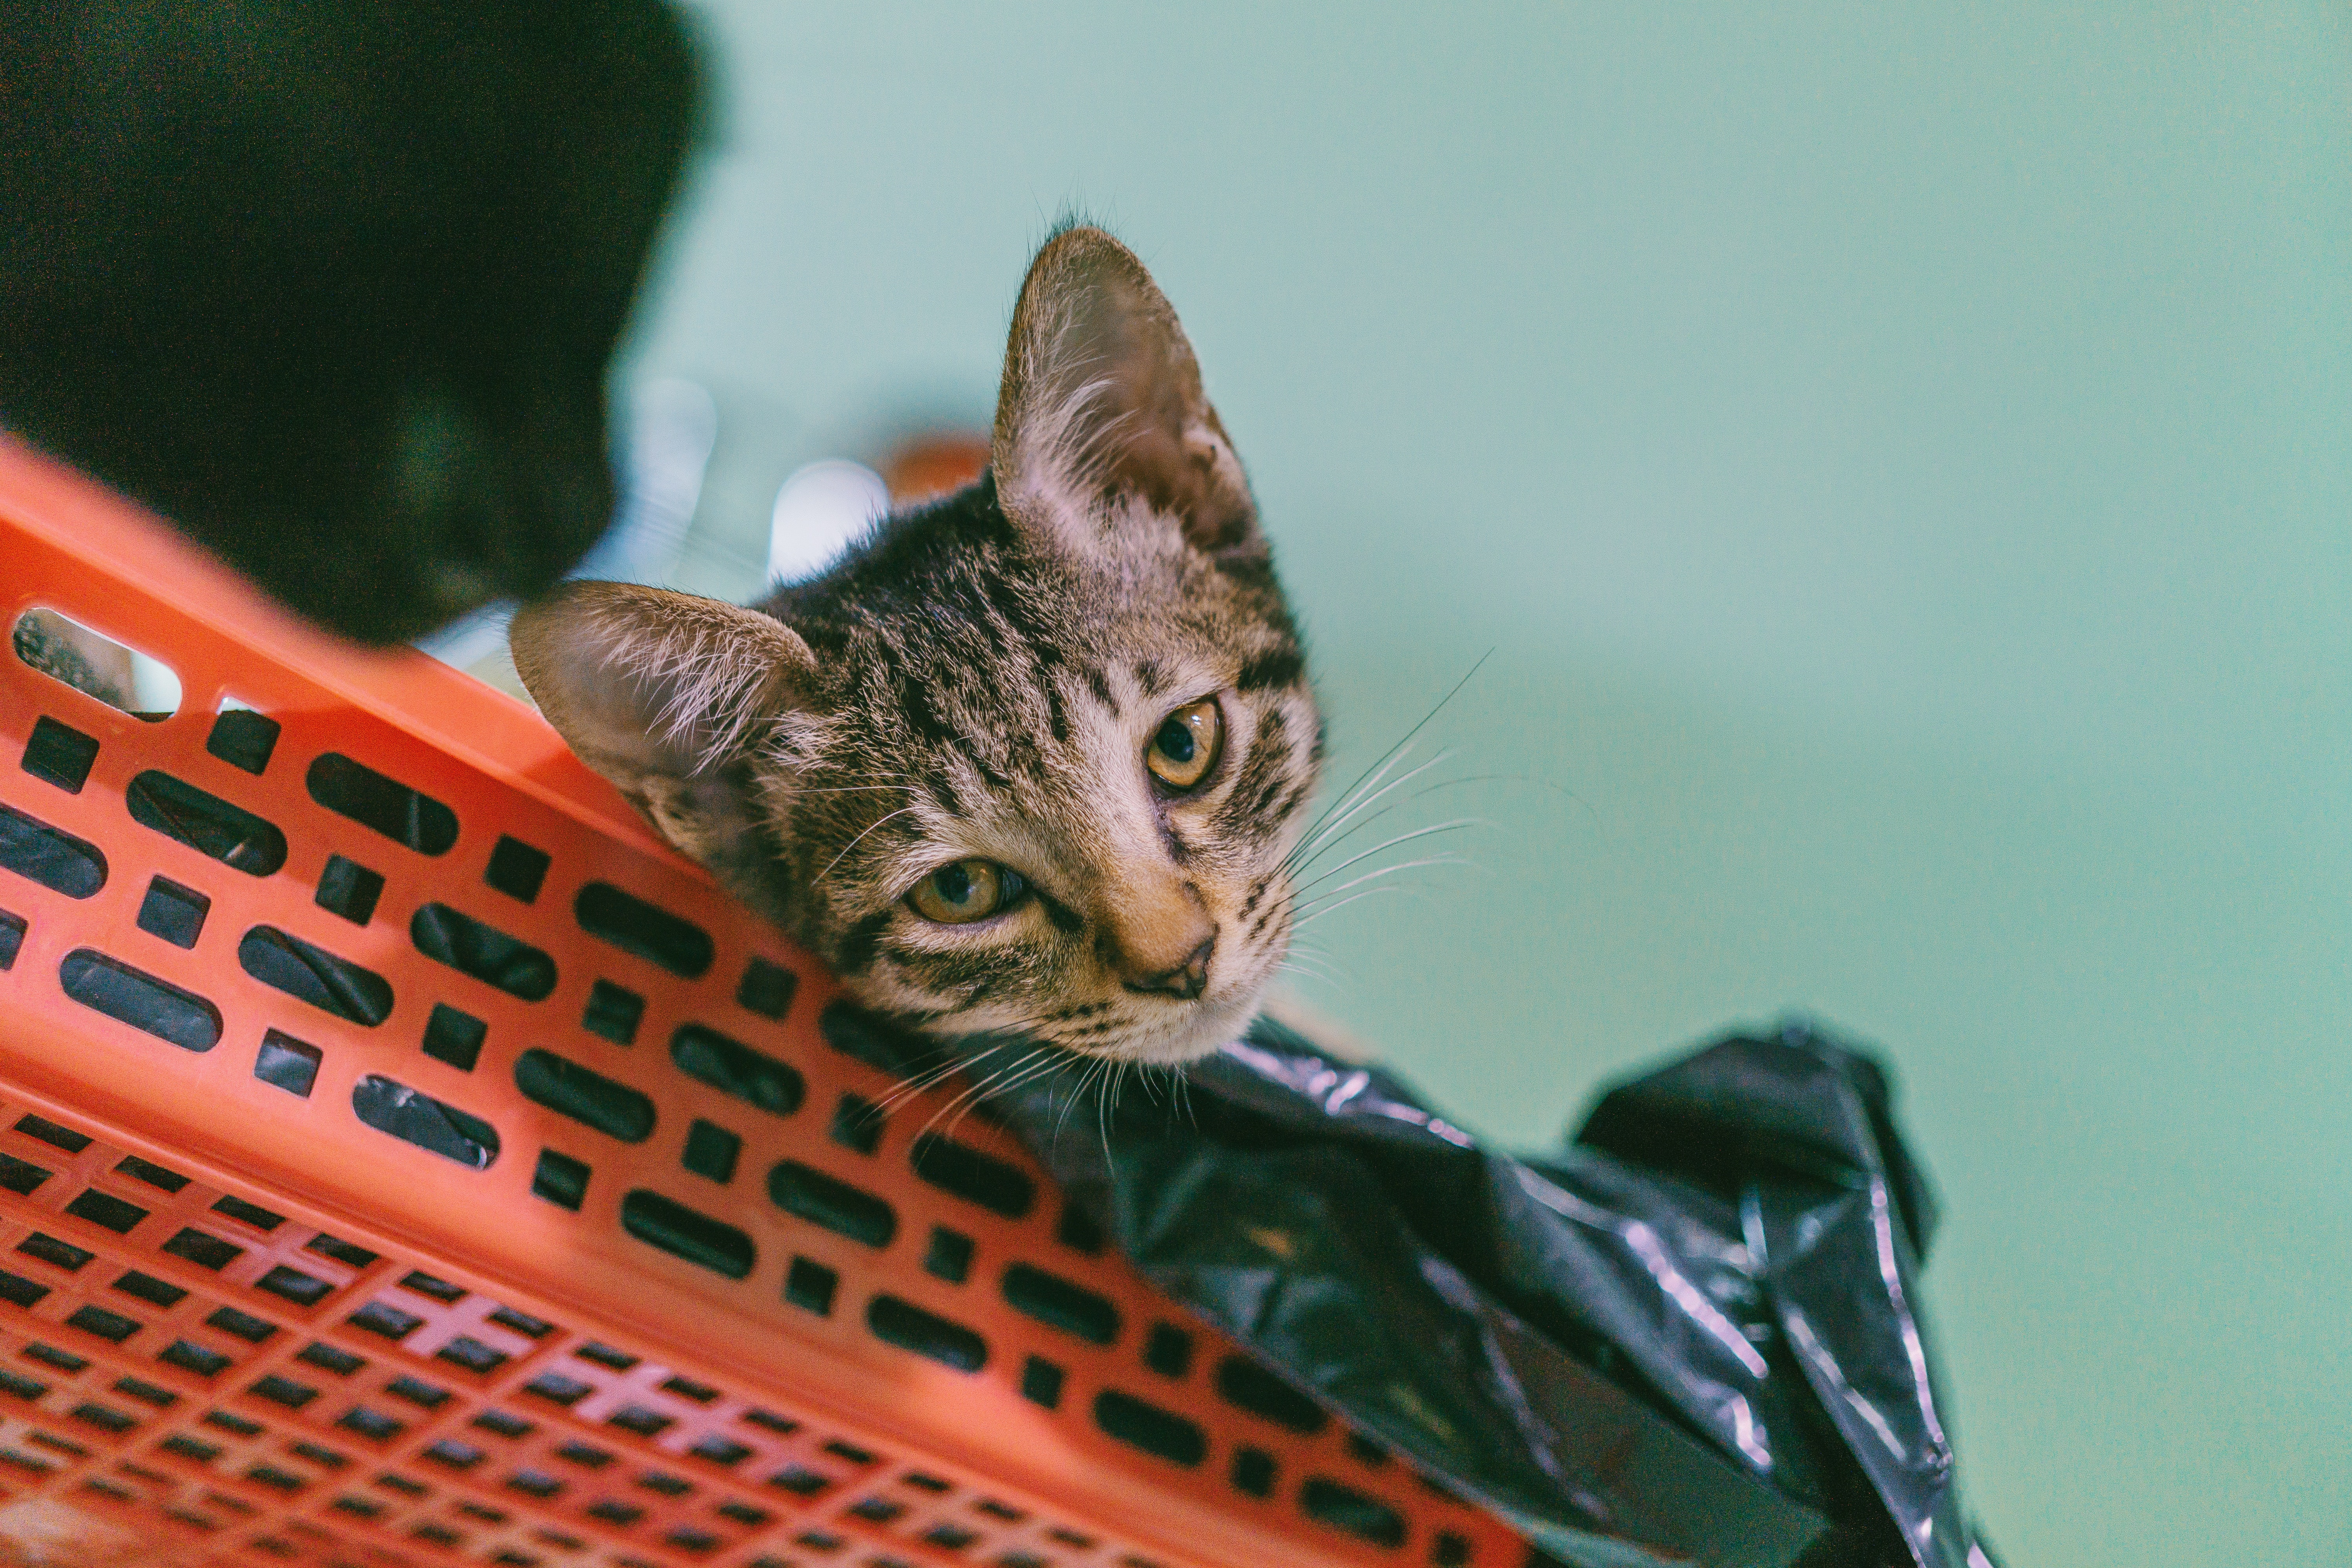 Brown Tabby Cat Lying on Plastic Rack, Kitty, Young, Whiskers, Tabby, HQ Photo